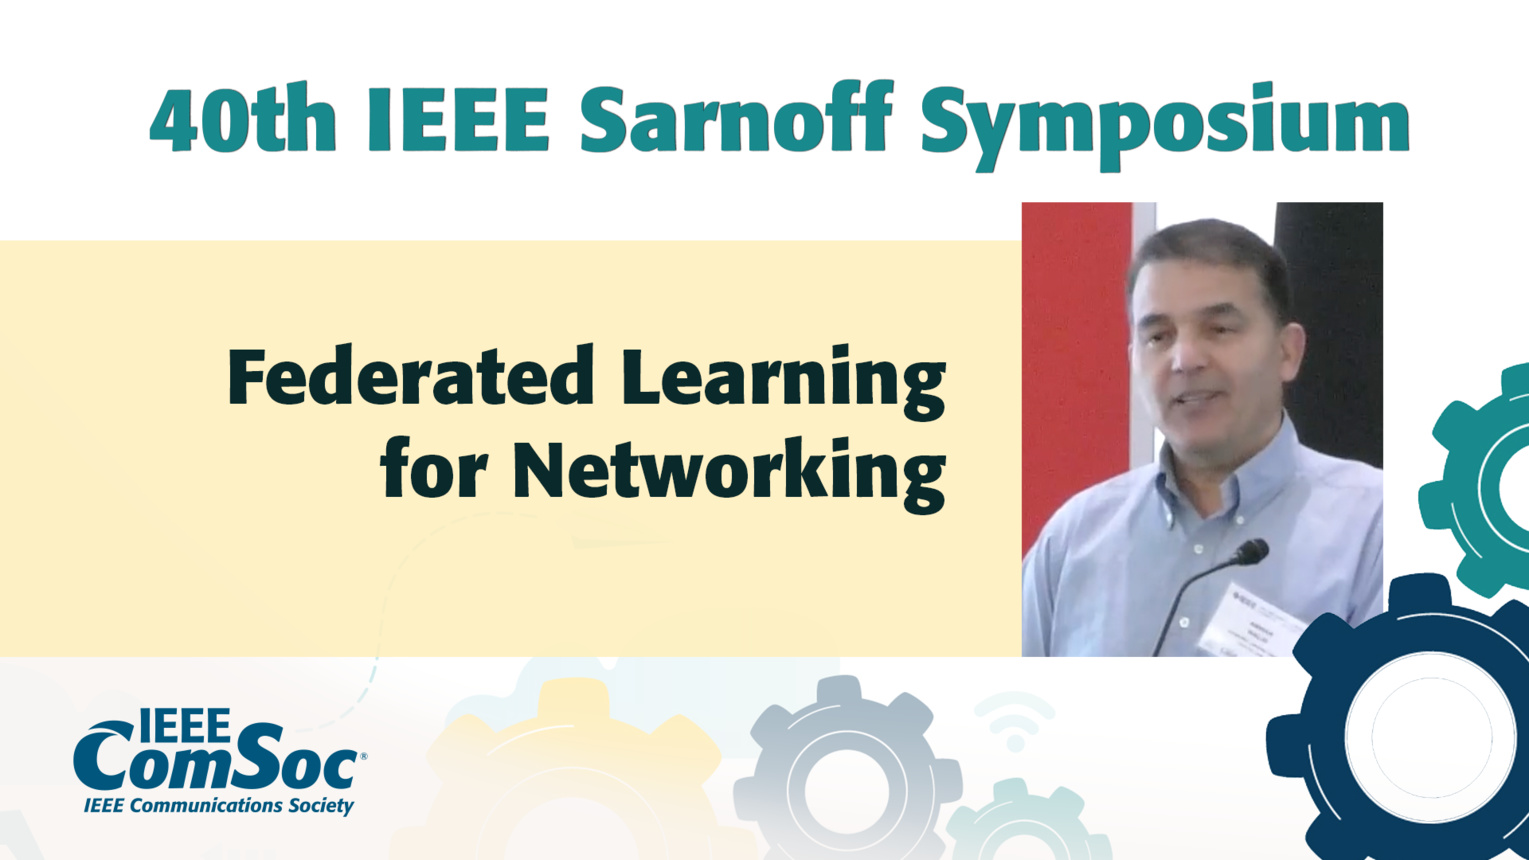 Federated Learning for Networking - Anwar Walid - IEEE Sarnoff Symposium, 2019